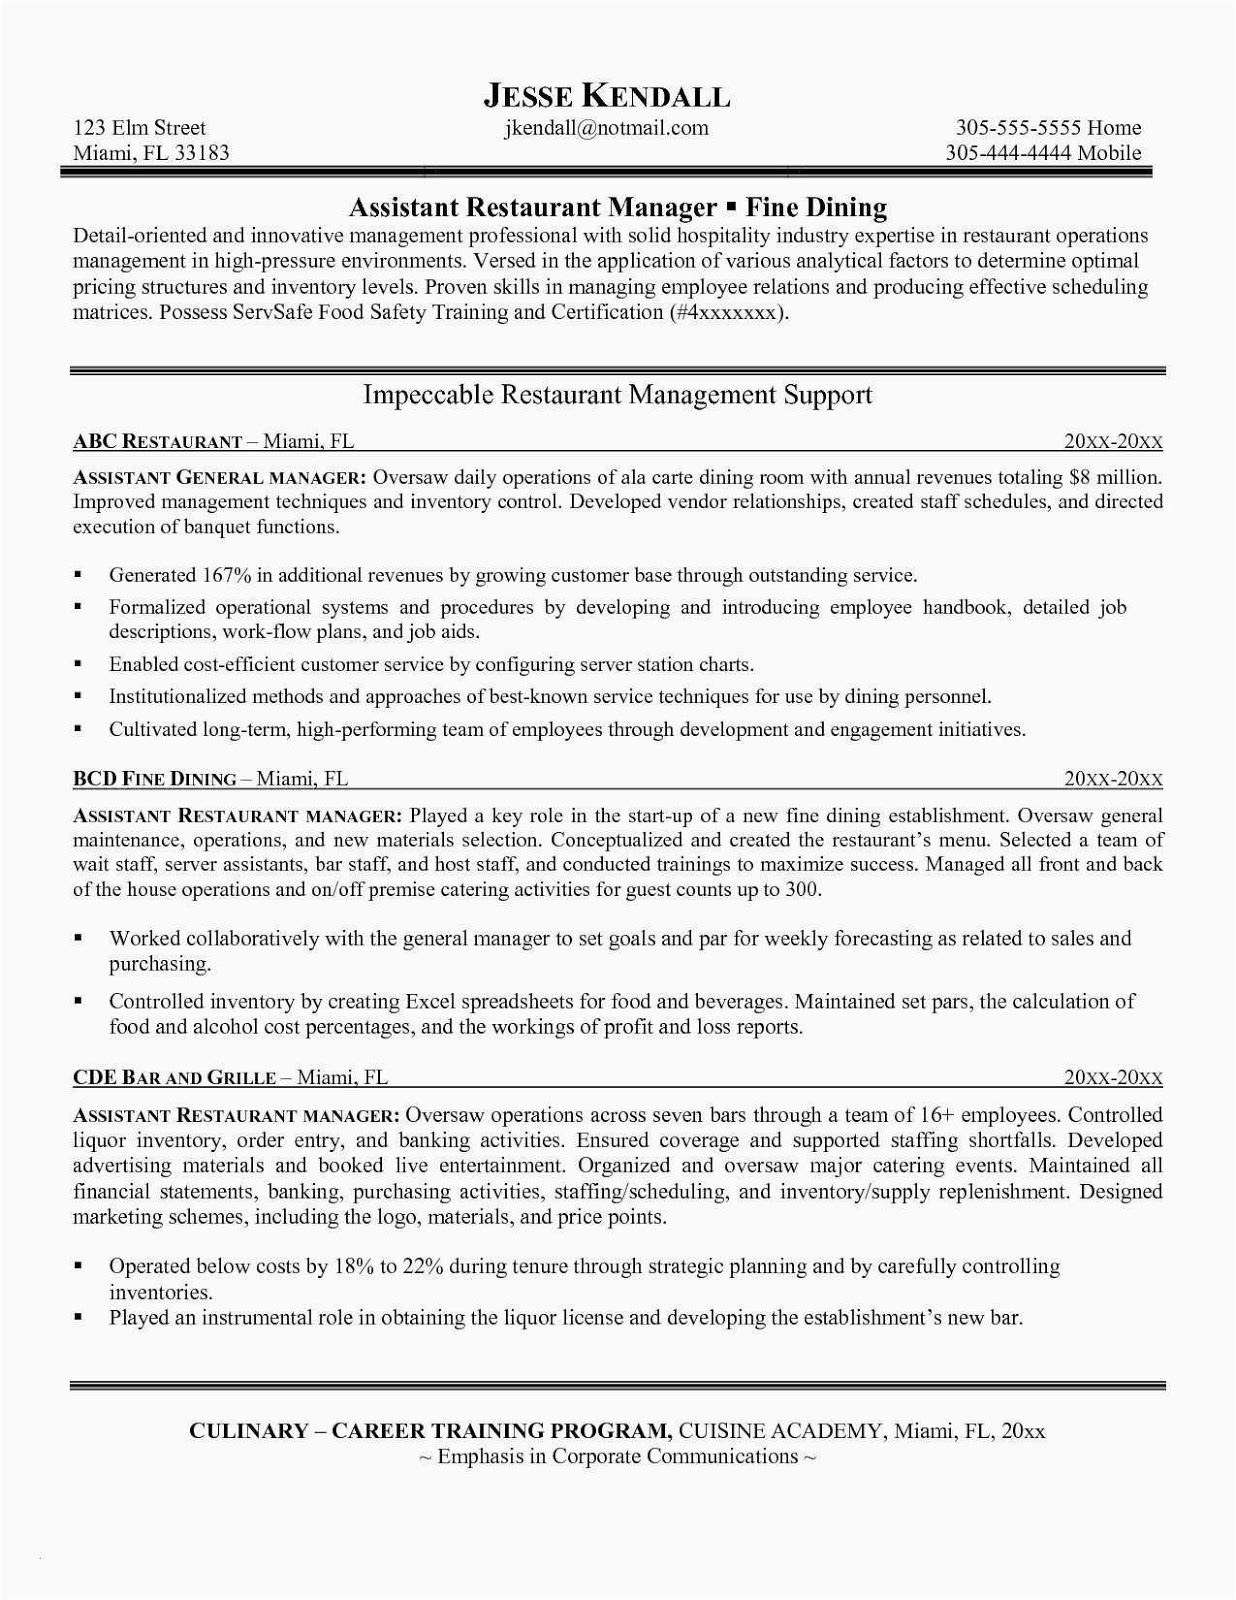 restaurant manager resume sample, restaurant manager resume samples pdf, restaurant manager resume sample free, restaurant manager resume sample monster, restaurant manager resume example,  restaurant assistant manager resume sample, restaurant general manager resume sample, restaurant district manager resume sample, restaurant general manager resume sample pdf, restaurant operation manager resume sample, restaurant manager job description resume sample